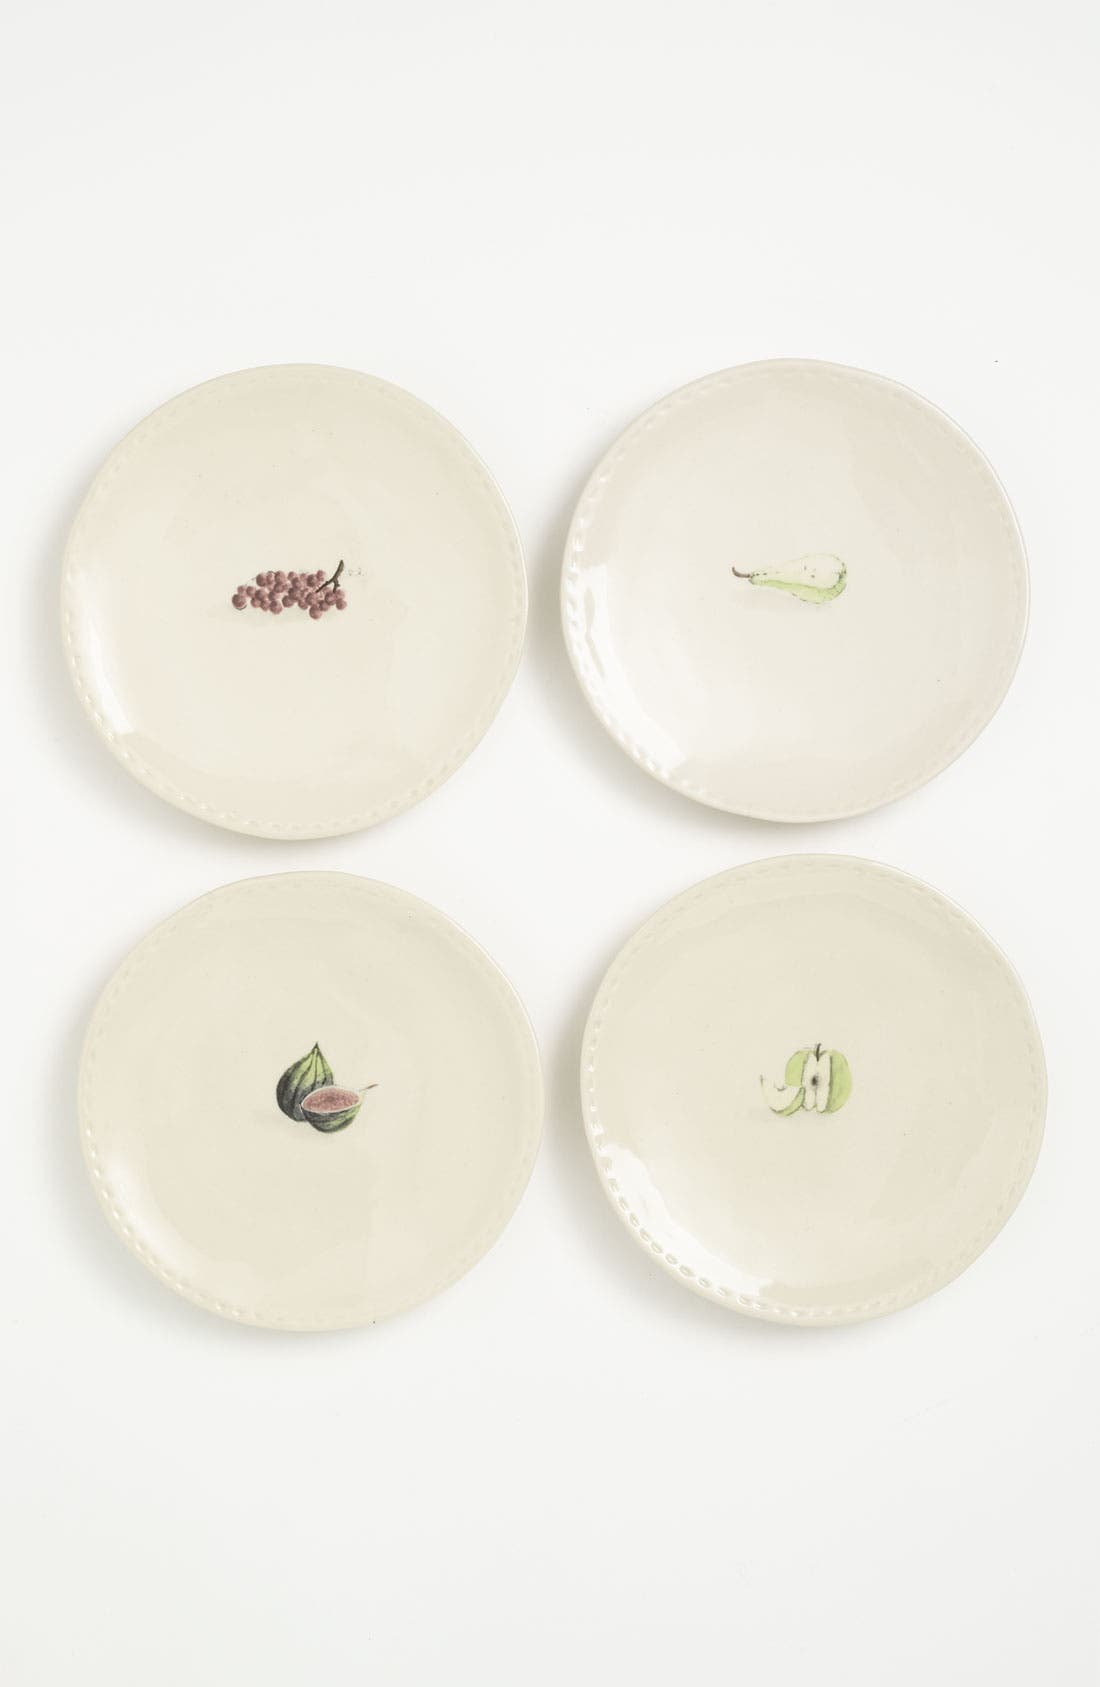 Main Image - Rae Dunn by Magenta 'Stitched Fruit' Plates (Set of 4)